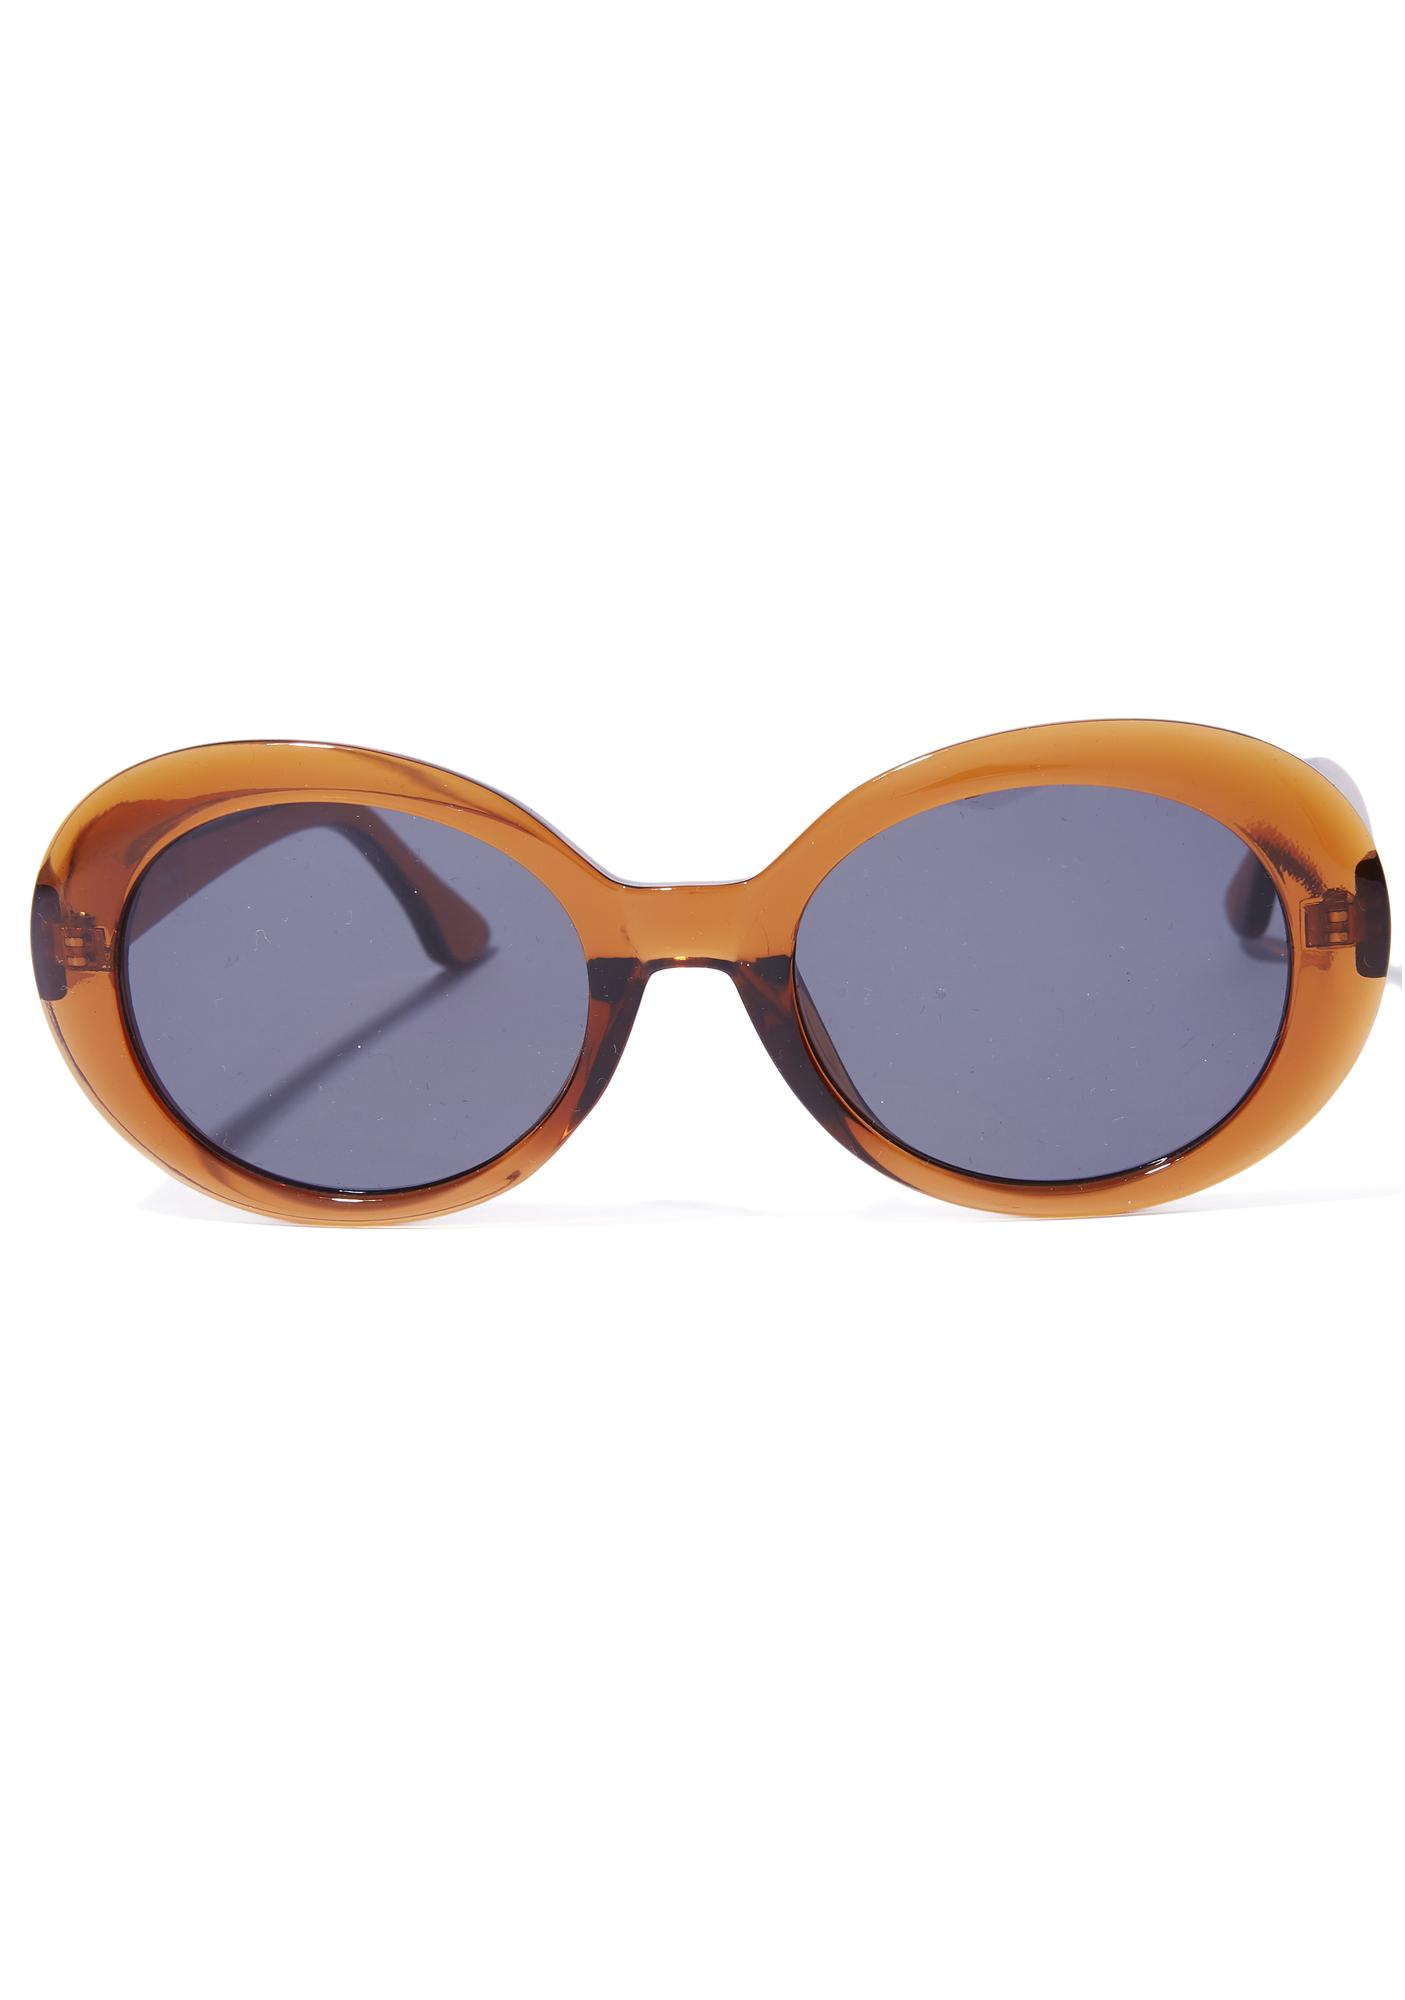 Orange Kurt Cobain Sunglasses